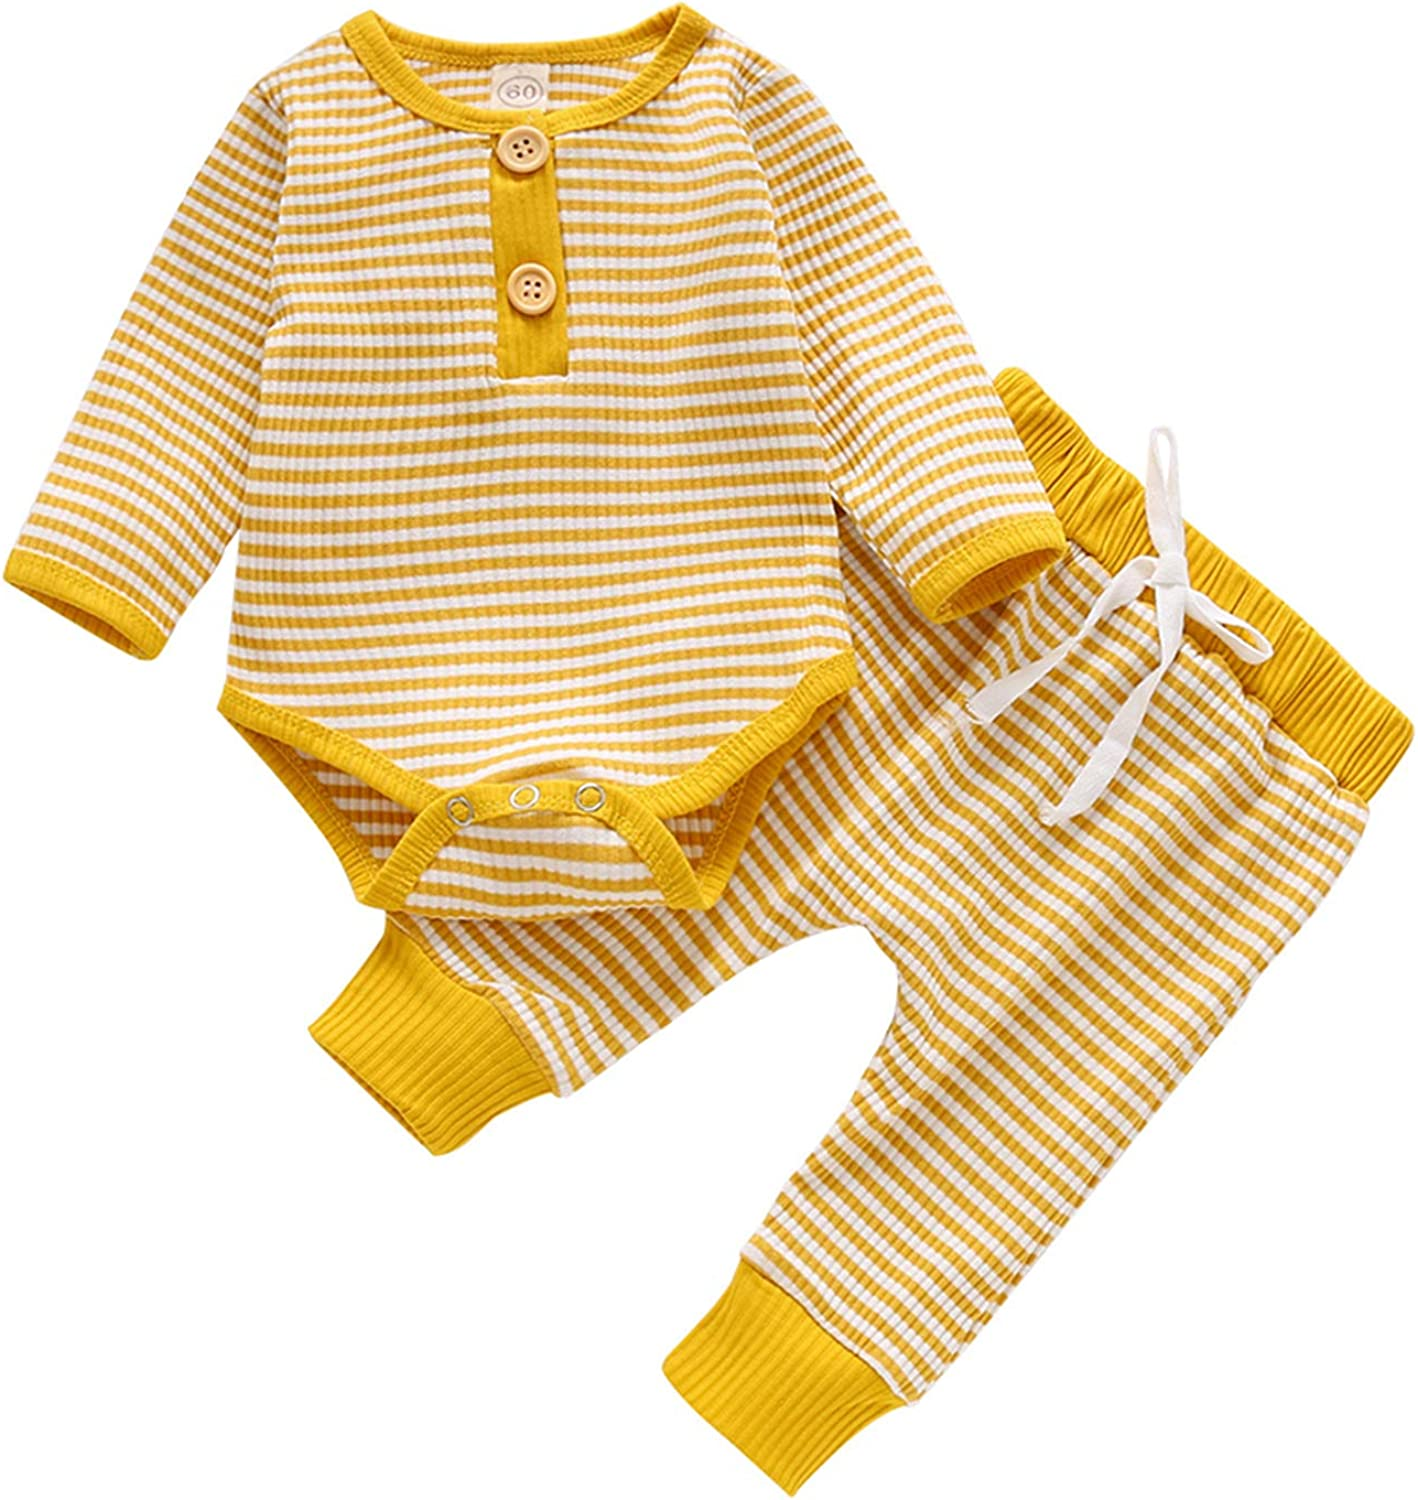 Newborn Baby Girls Knit Clothes Button Tops Shirt Stripe Pants with Drawstring Infant Boys 2Pcs Fall Winter Outfits Set